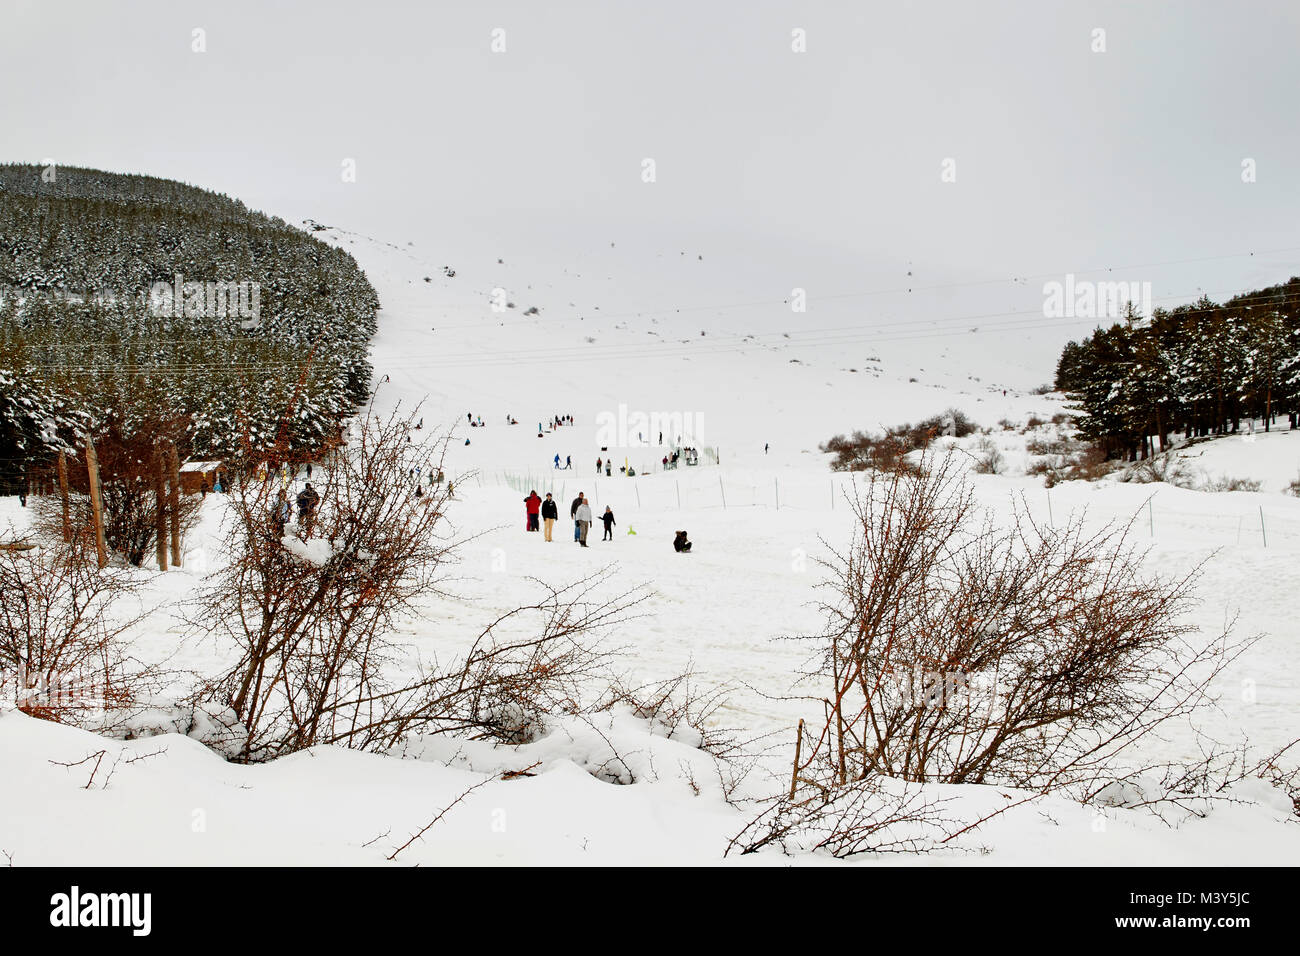 winter sport in Andalusia, Spain - Stock Image